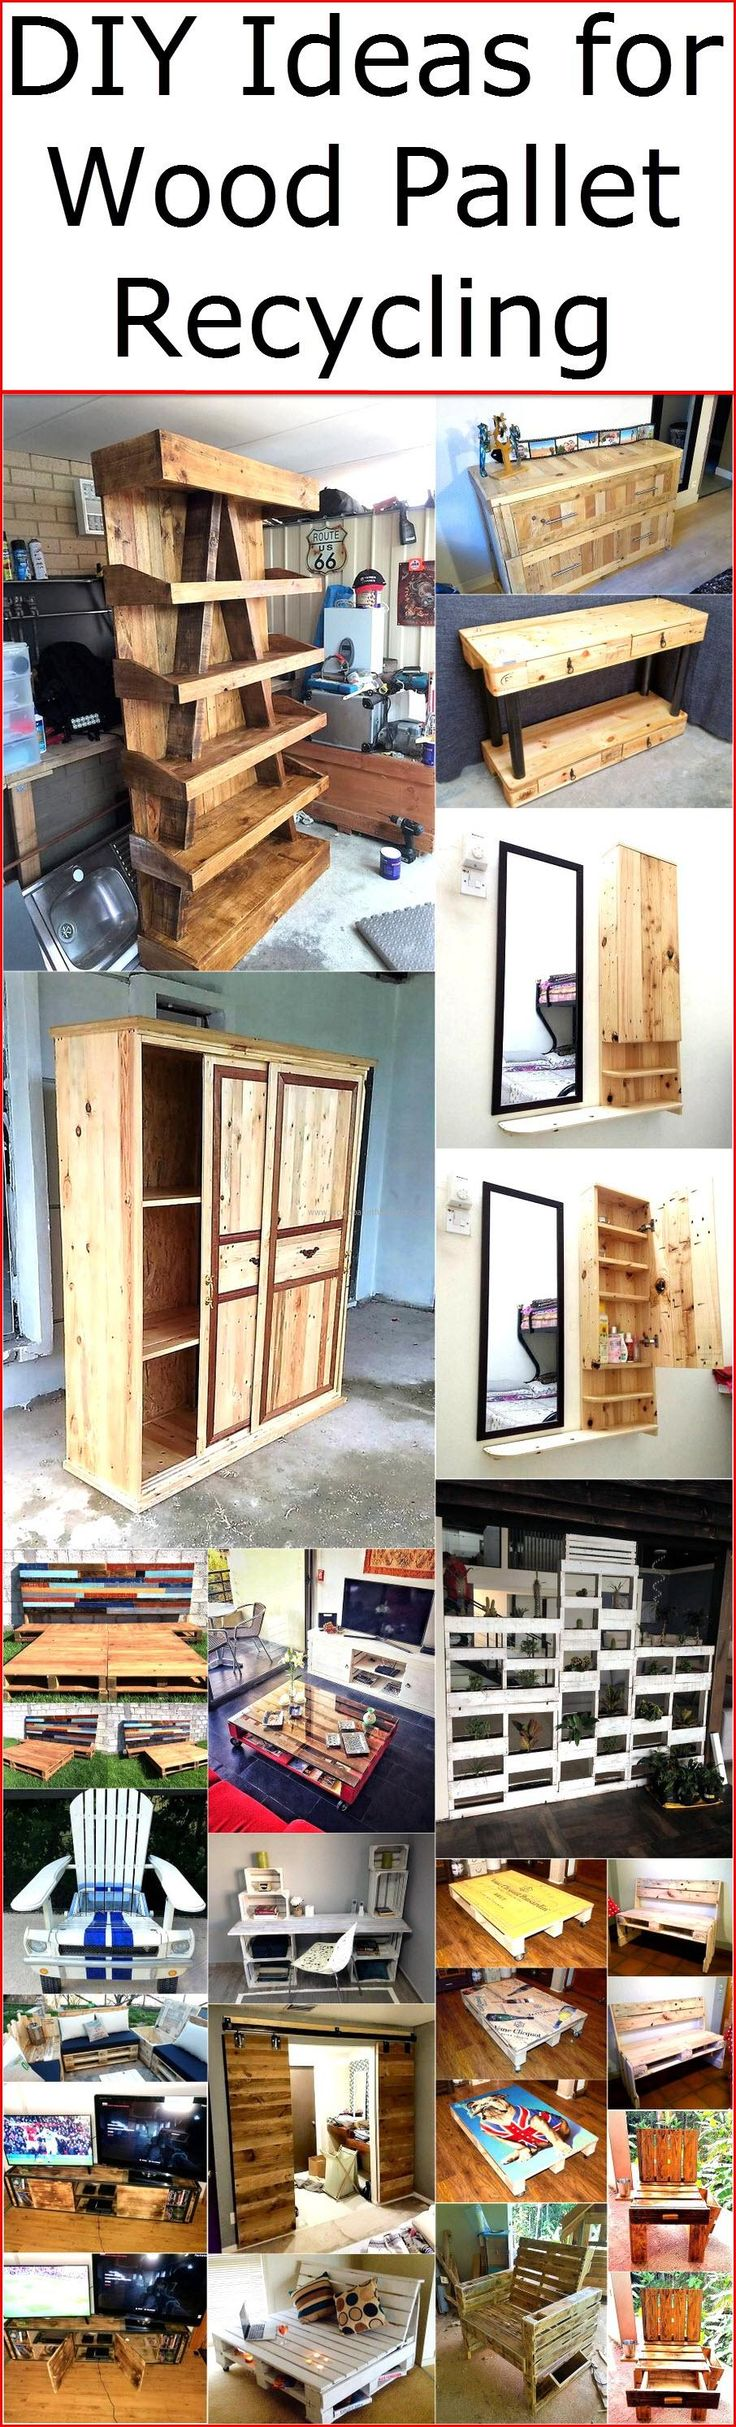 There are unlimited DIY ideas which can be created for the home by reshaping the wooden pallets, one can make as many innovative ideas using the wood pallets as he/she wants to adorn the home in a unique way by placing the items that are not available in anyone else's home. Wood pallet recycling is a great task as well as outstanding time pass activity which end up in getting something unique that helps in adorning the home innovatively.